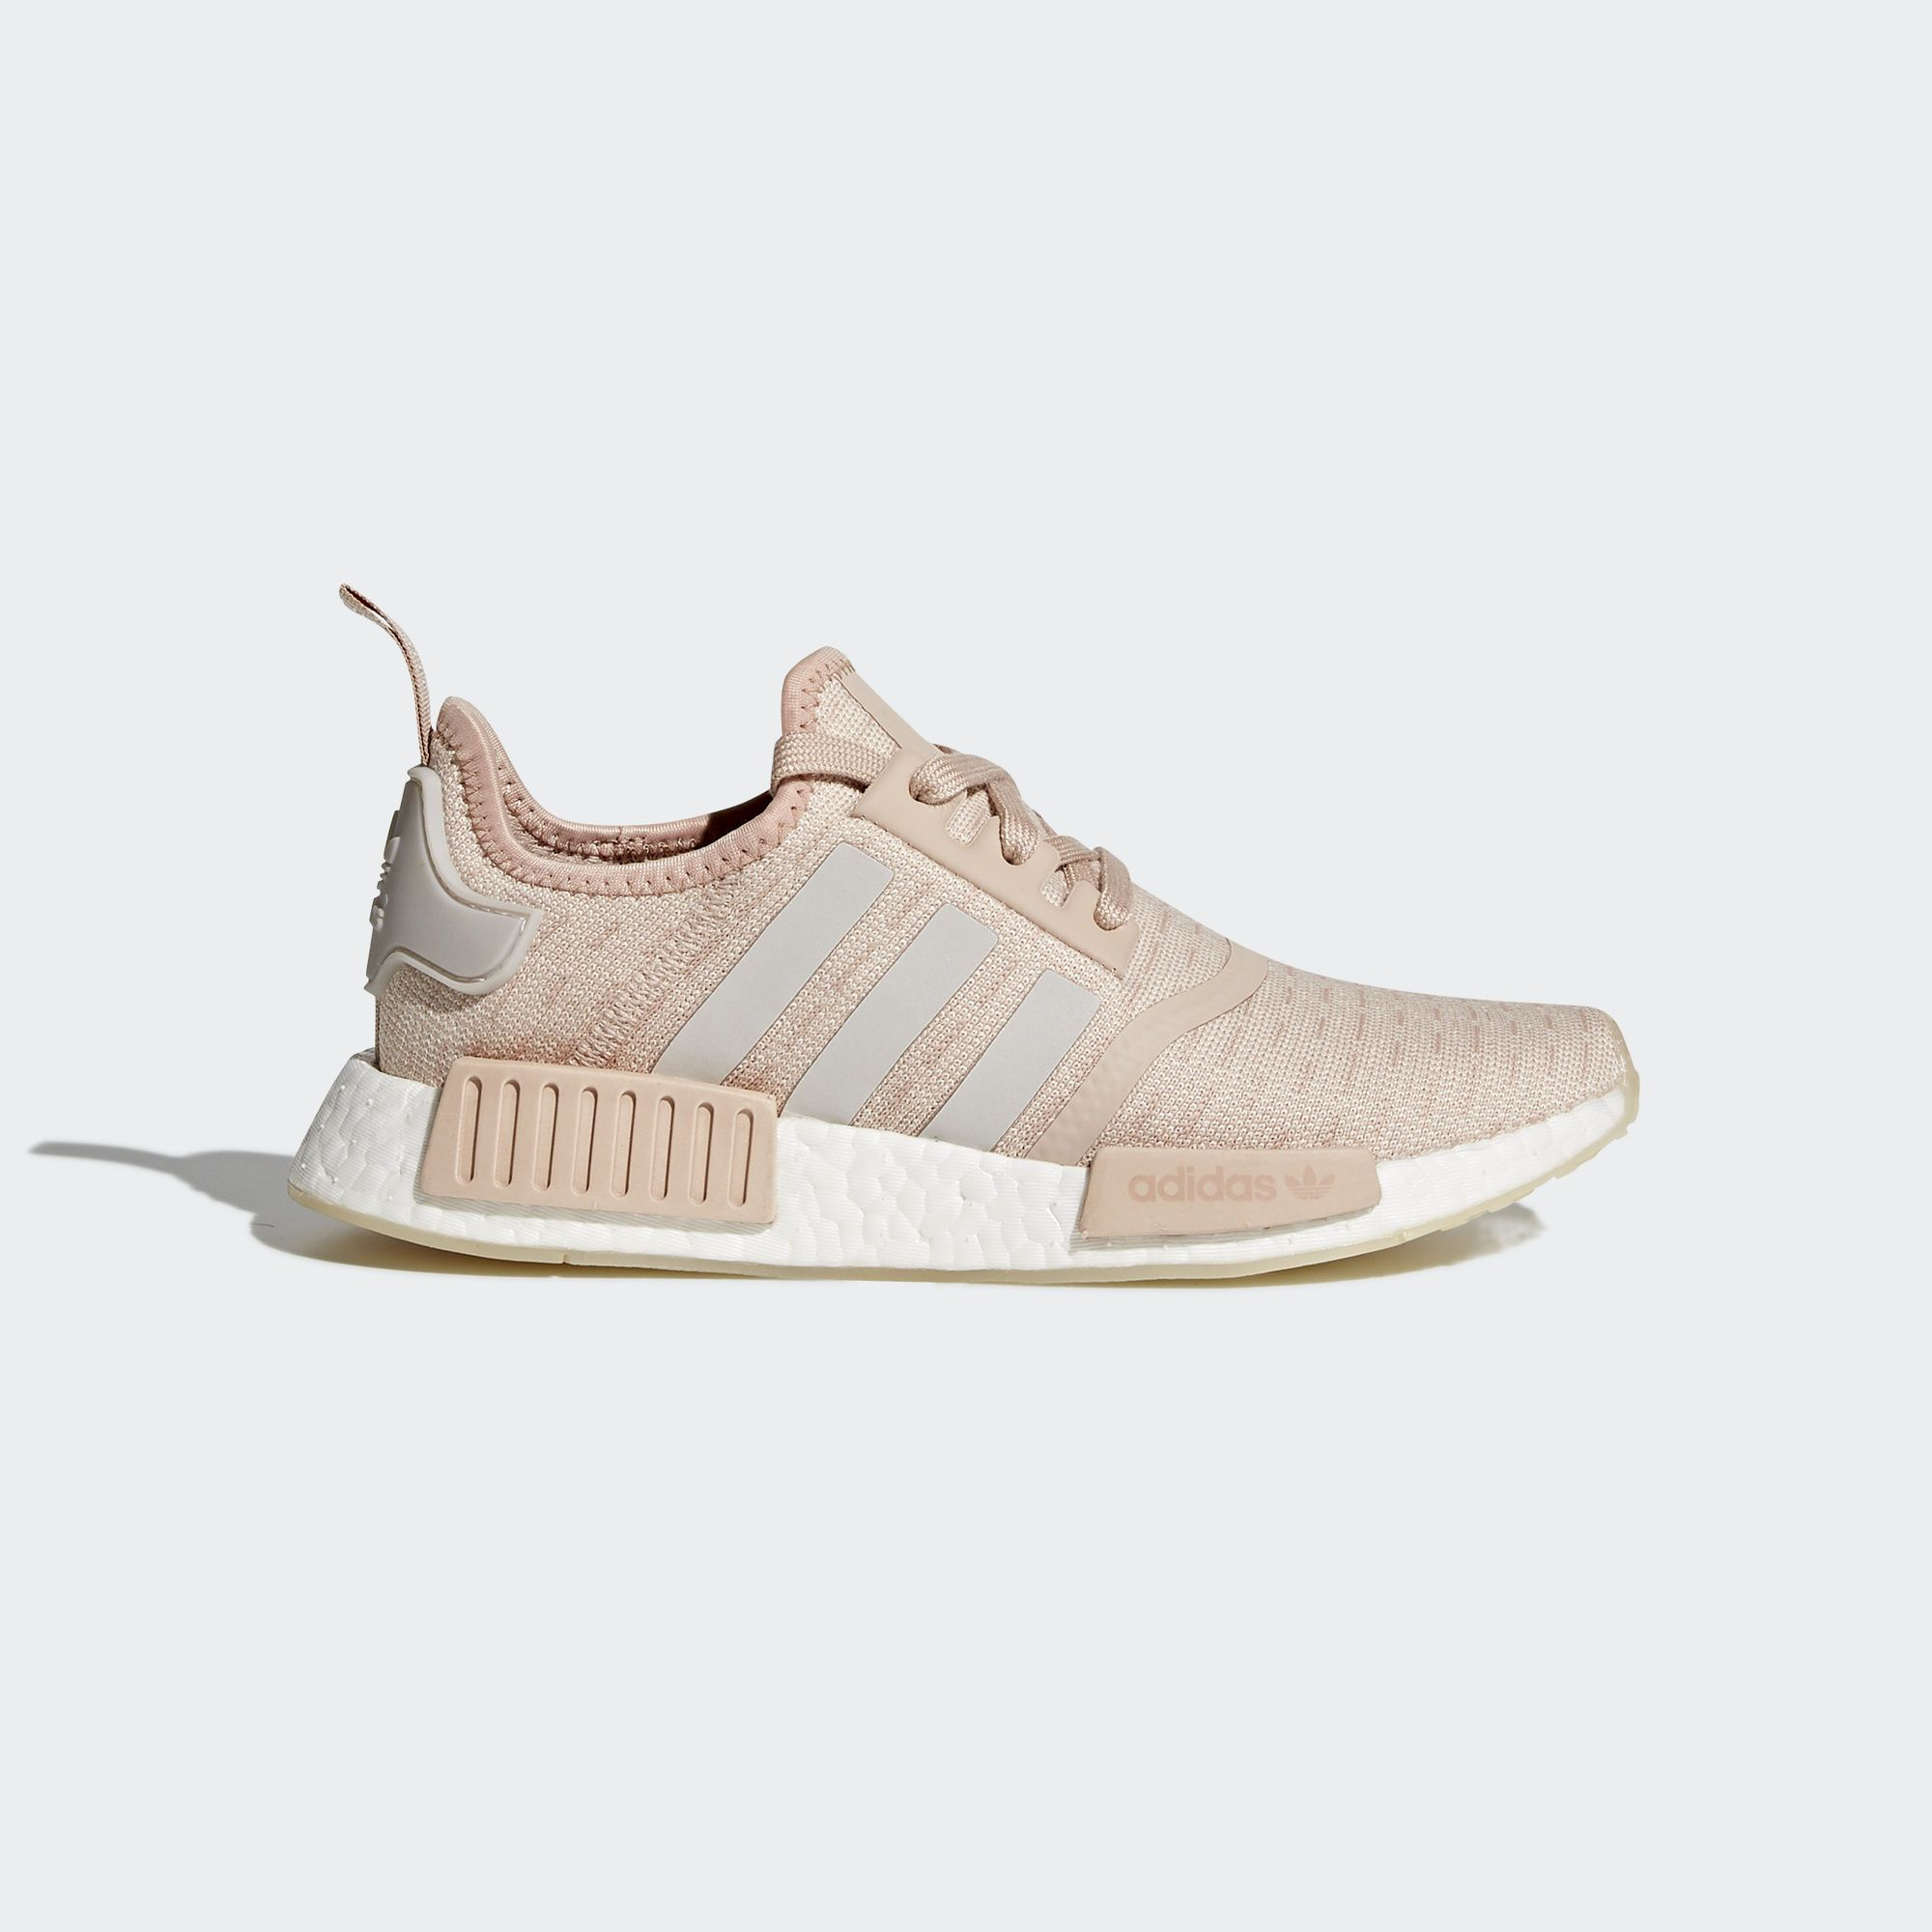 buy popular f4325 c28e6 adidas NMD R1 Shoes - Pink   adidas US